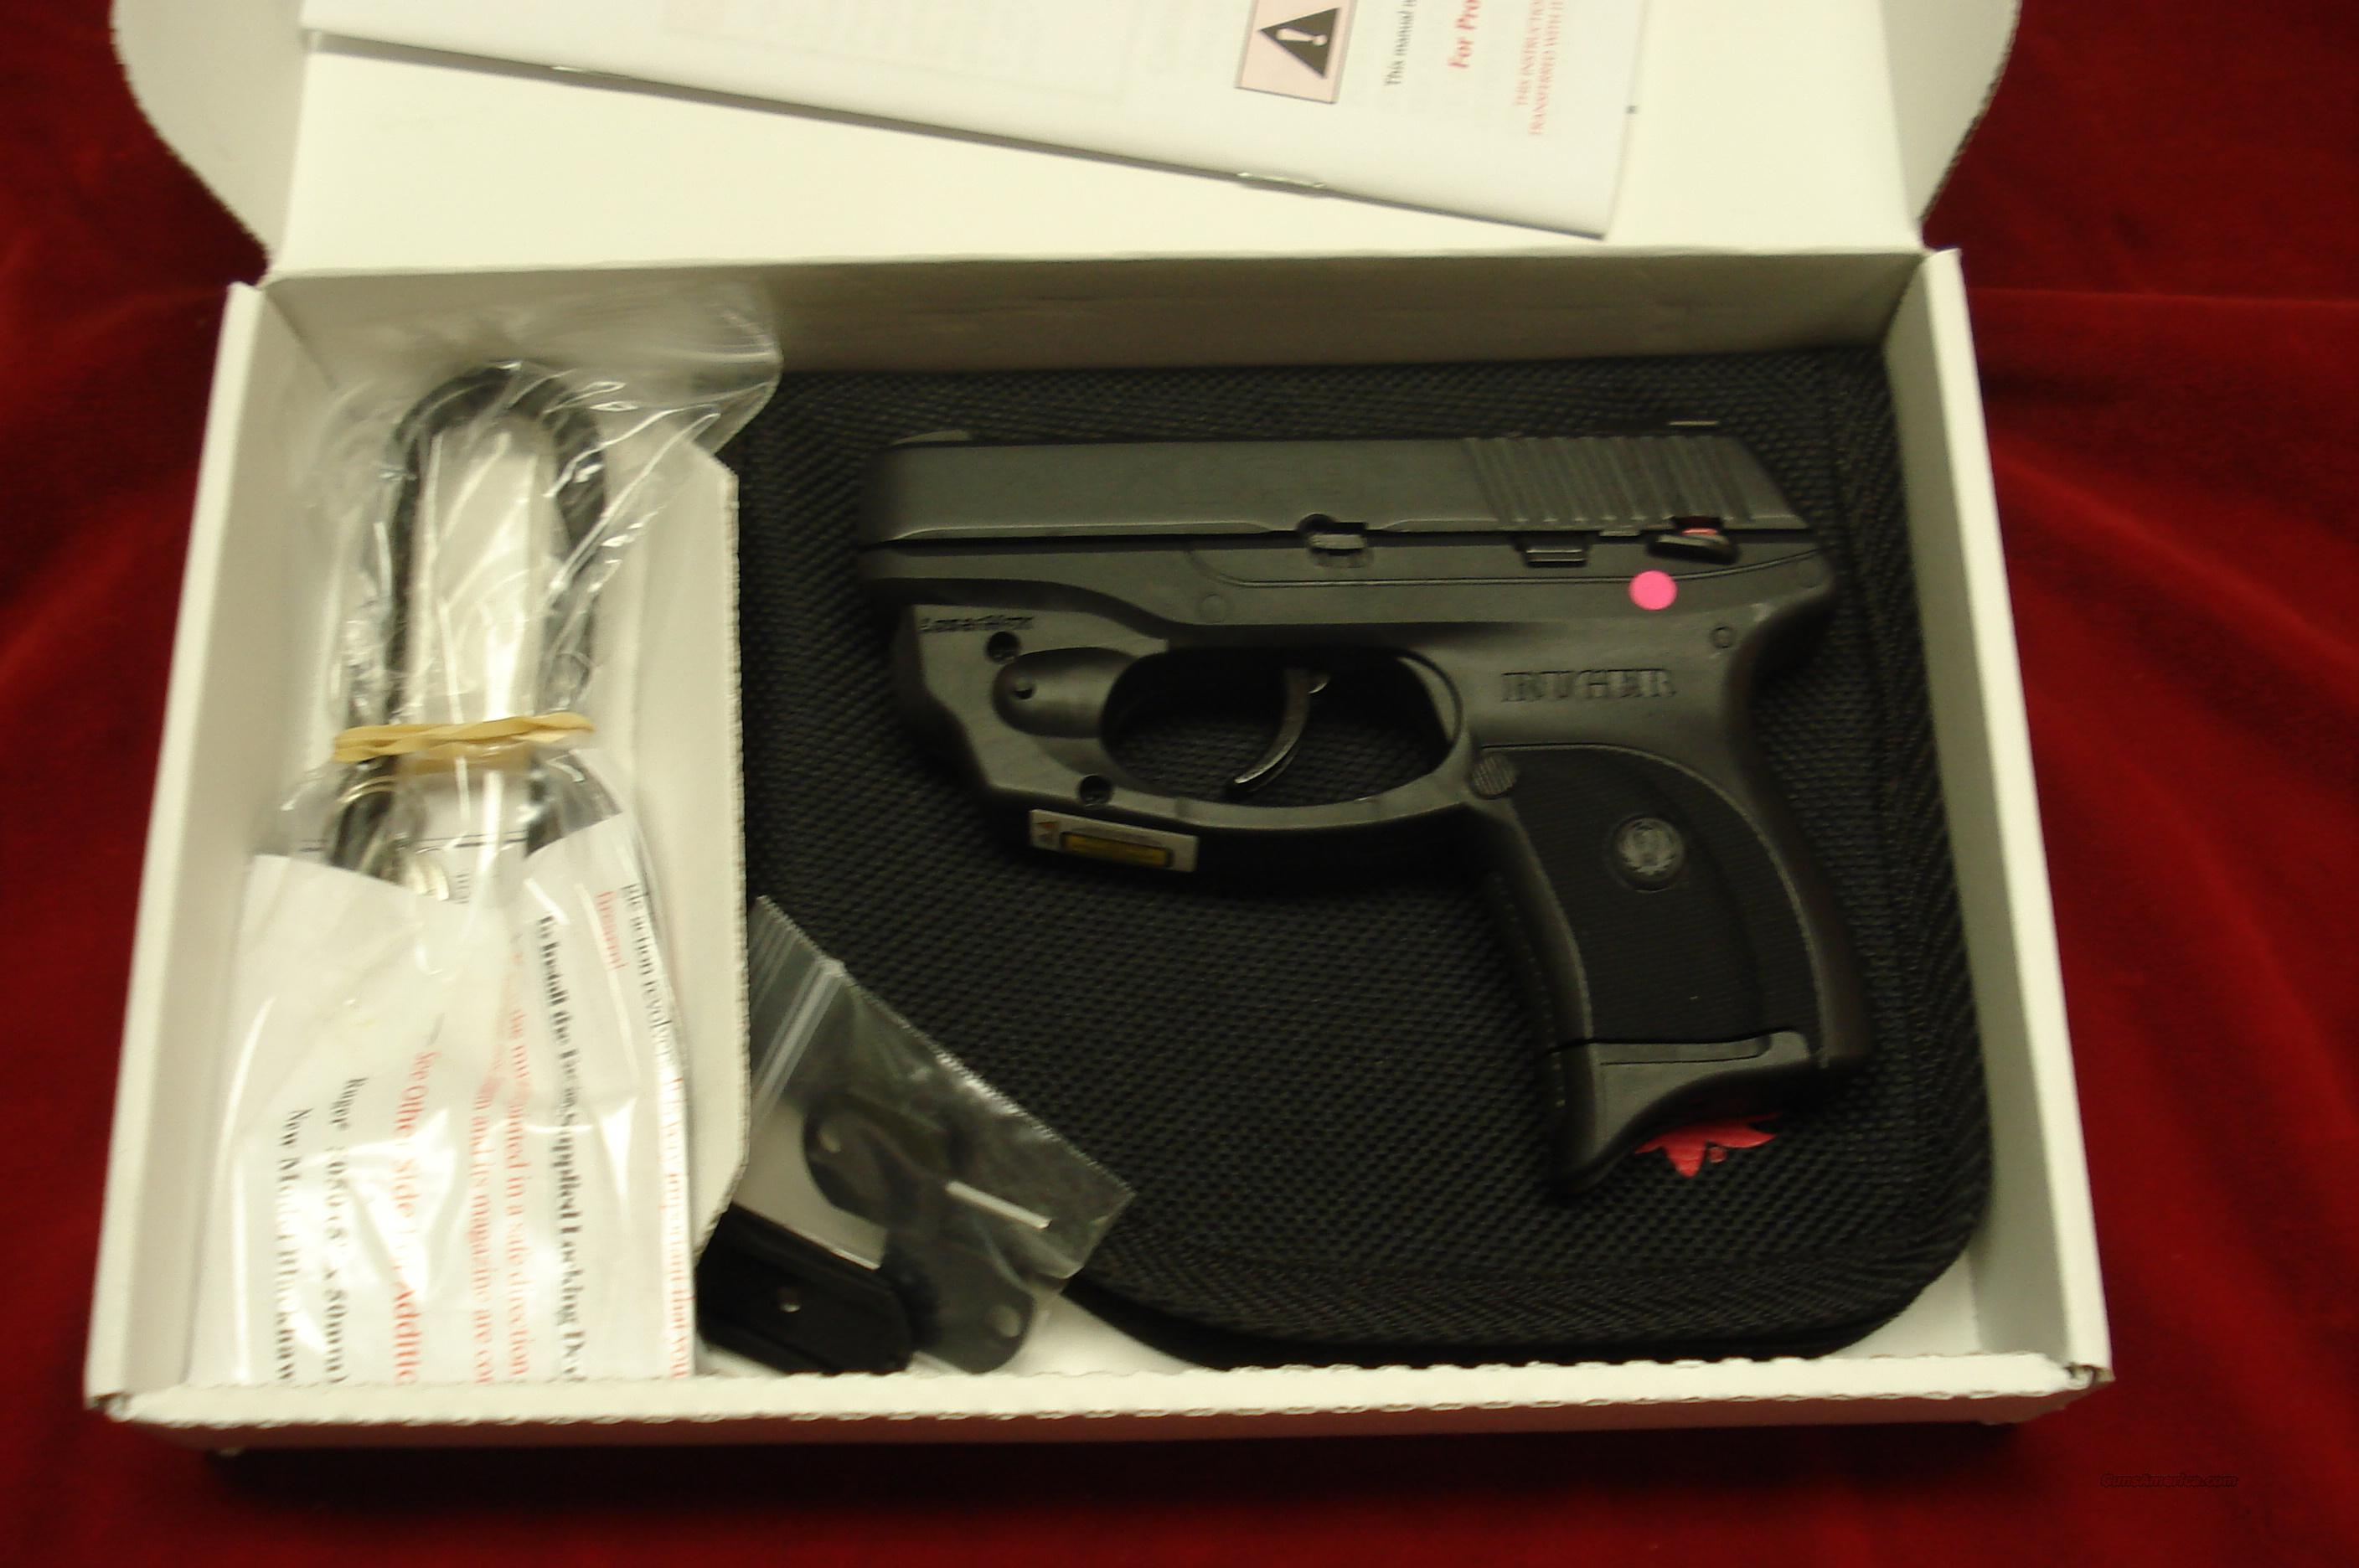 RUGER LC9 (Lightweight Compact nine) 9MM. WITH FACTORY LASER NEW  Guns > Pistols > Ruger Semi-Auto Pistols > LCP